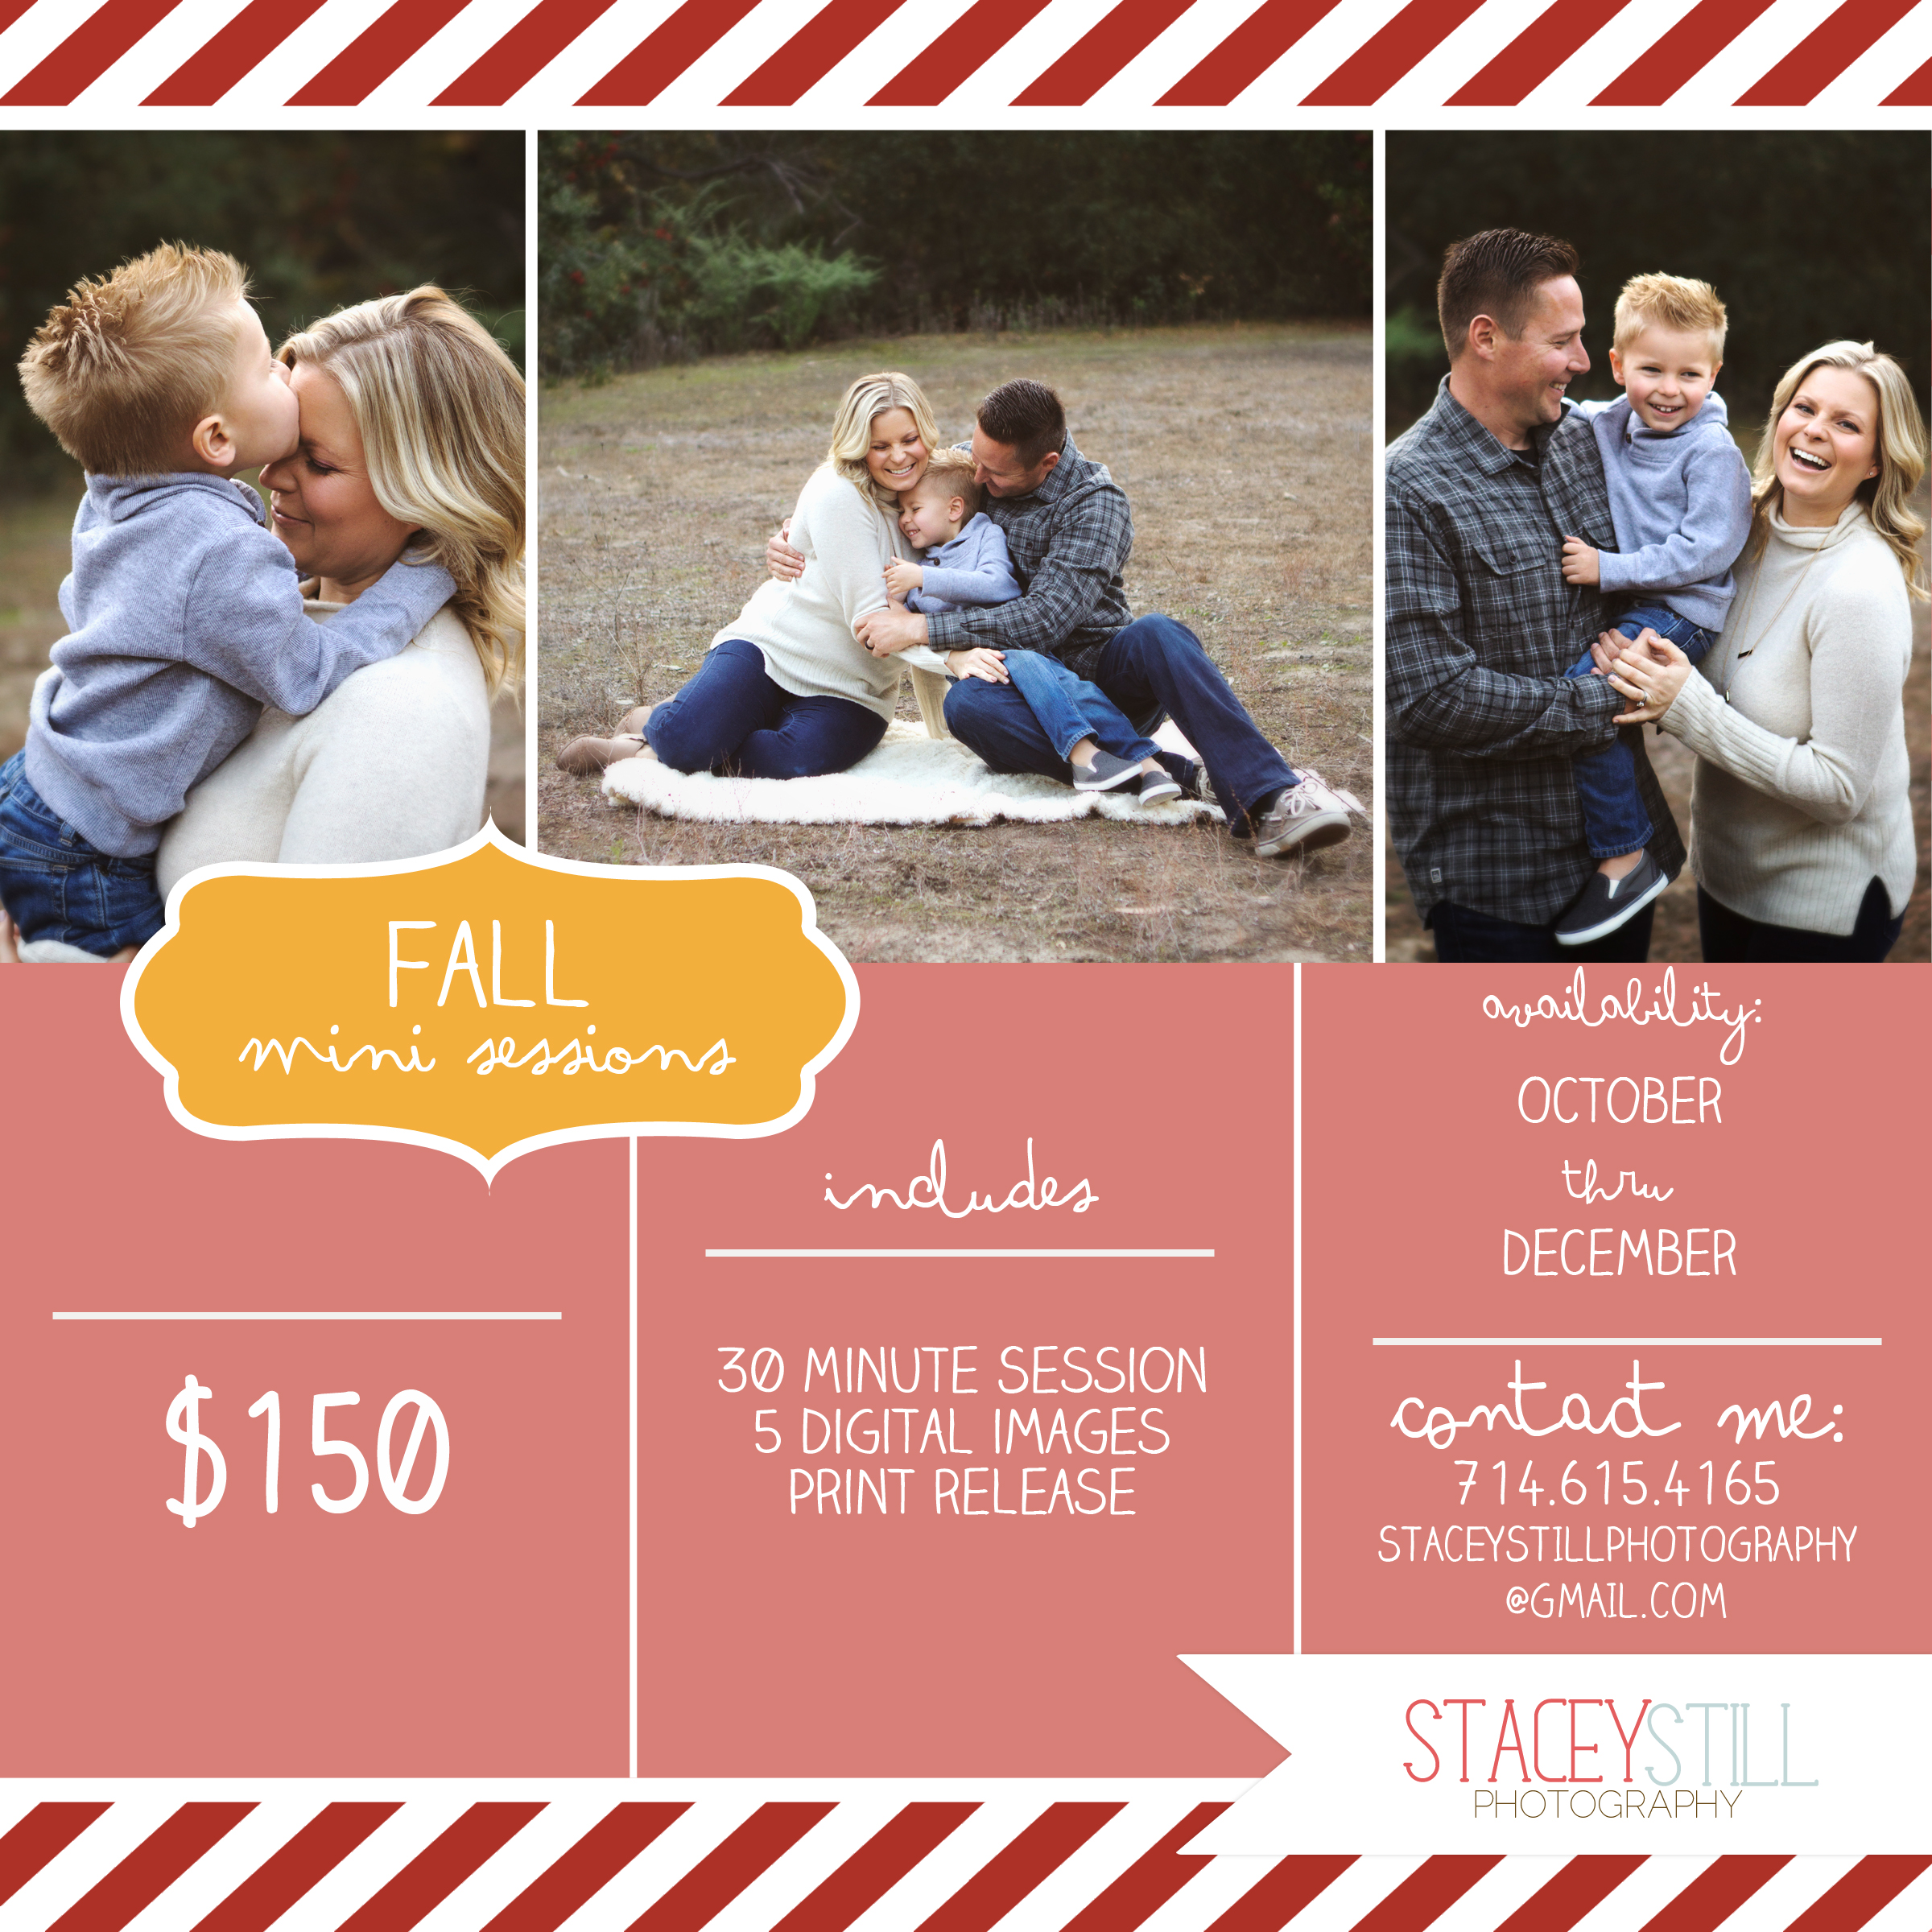 Fall Minis will take place in or near Mission Viejo, CA. Limit of 5 people per session. $20/add'l person. Additional images available for purchase. All sessions will be taken close to sunset. Unless you want to get crazy and book a sunrise session.  :)